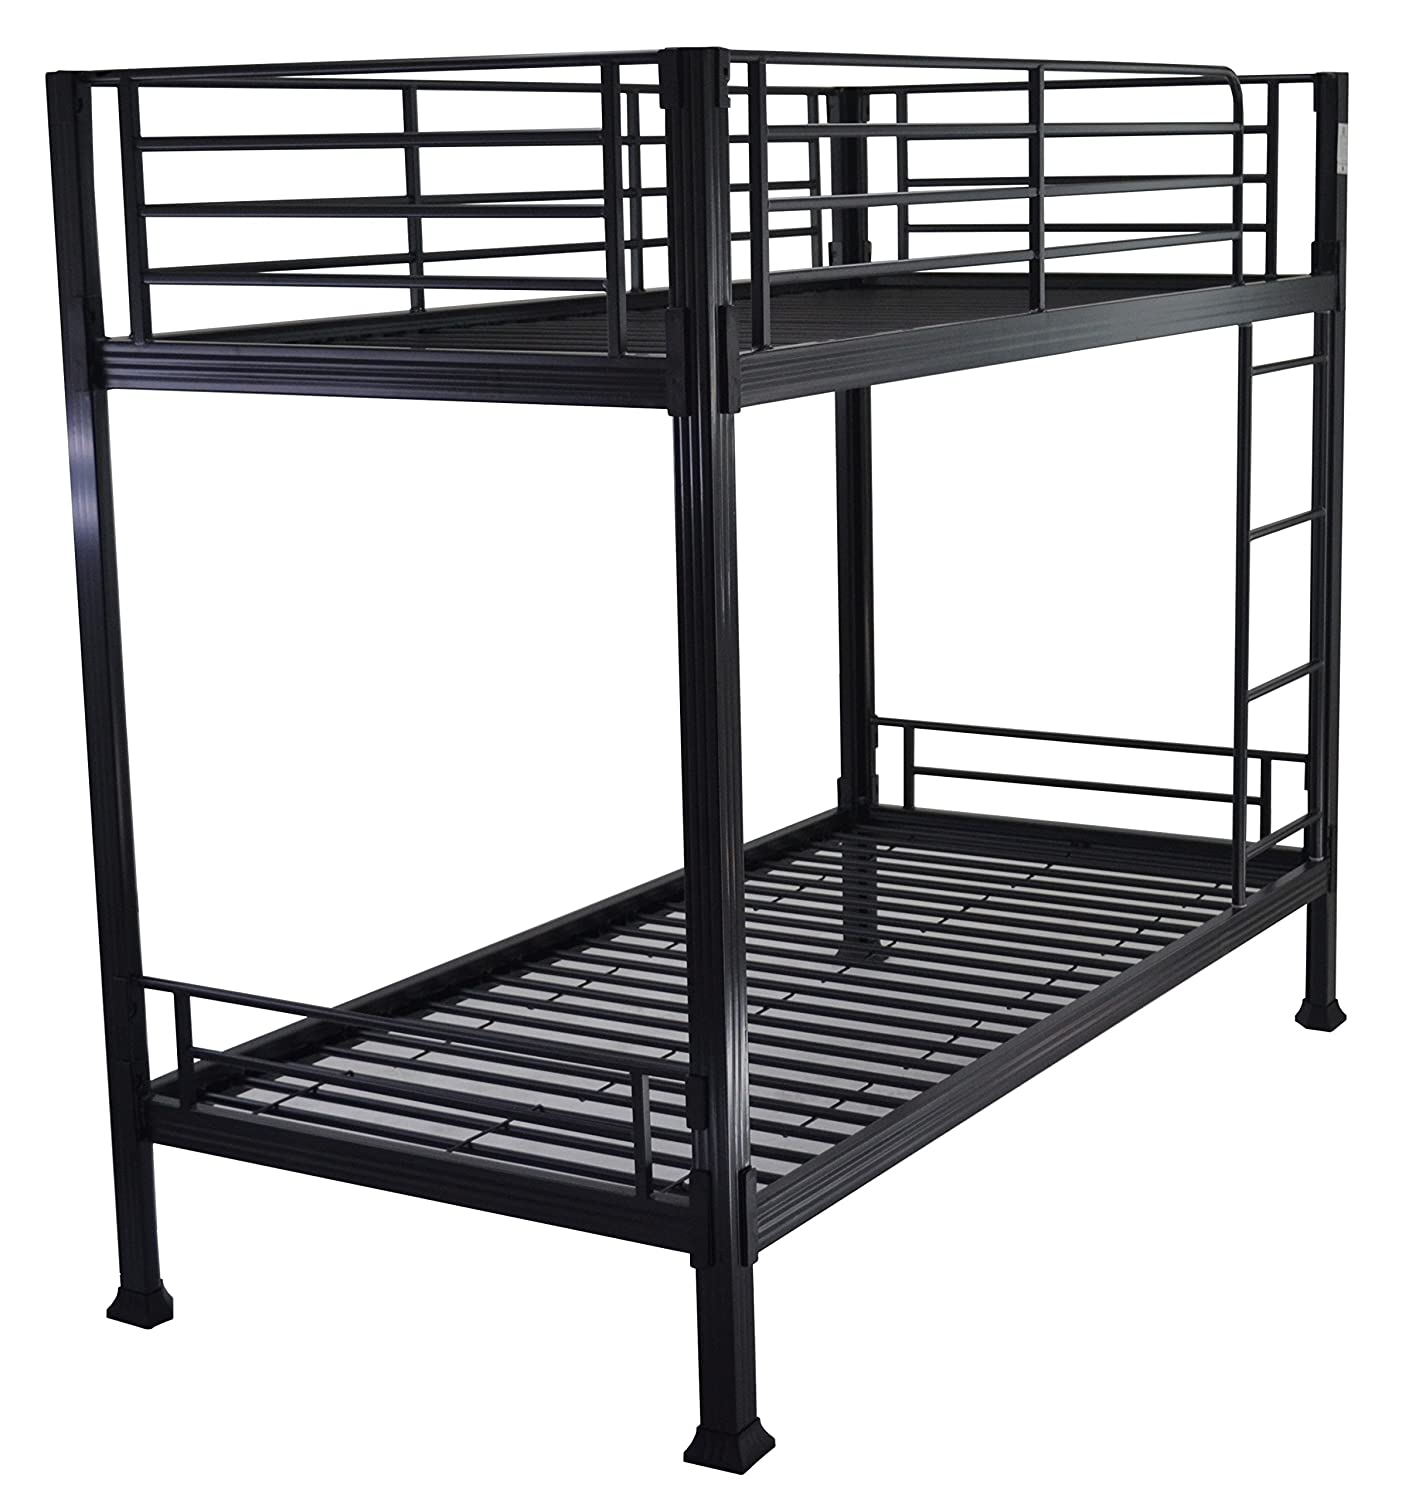 Strictly Beds Black Bunk Bed - 3ft single metal bunkbed - Can be used by adults - VERY STRONG Strictlybedsandbunks